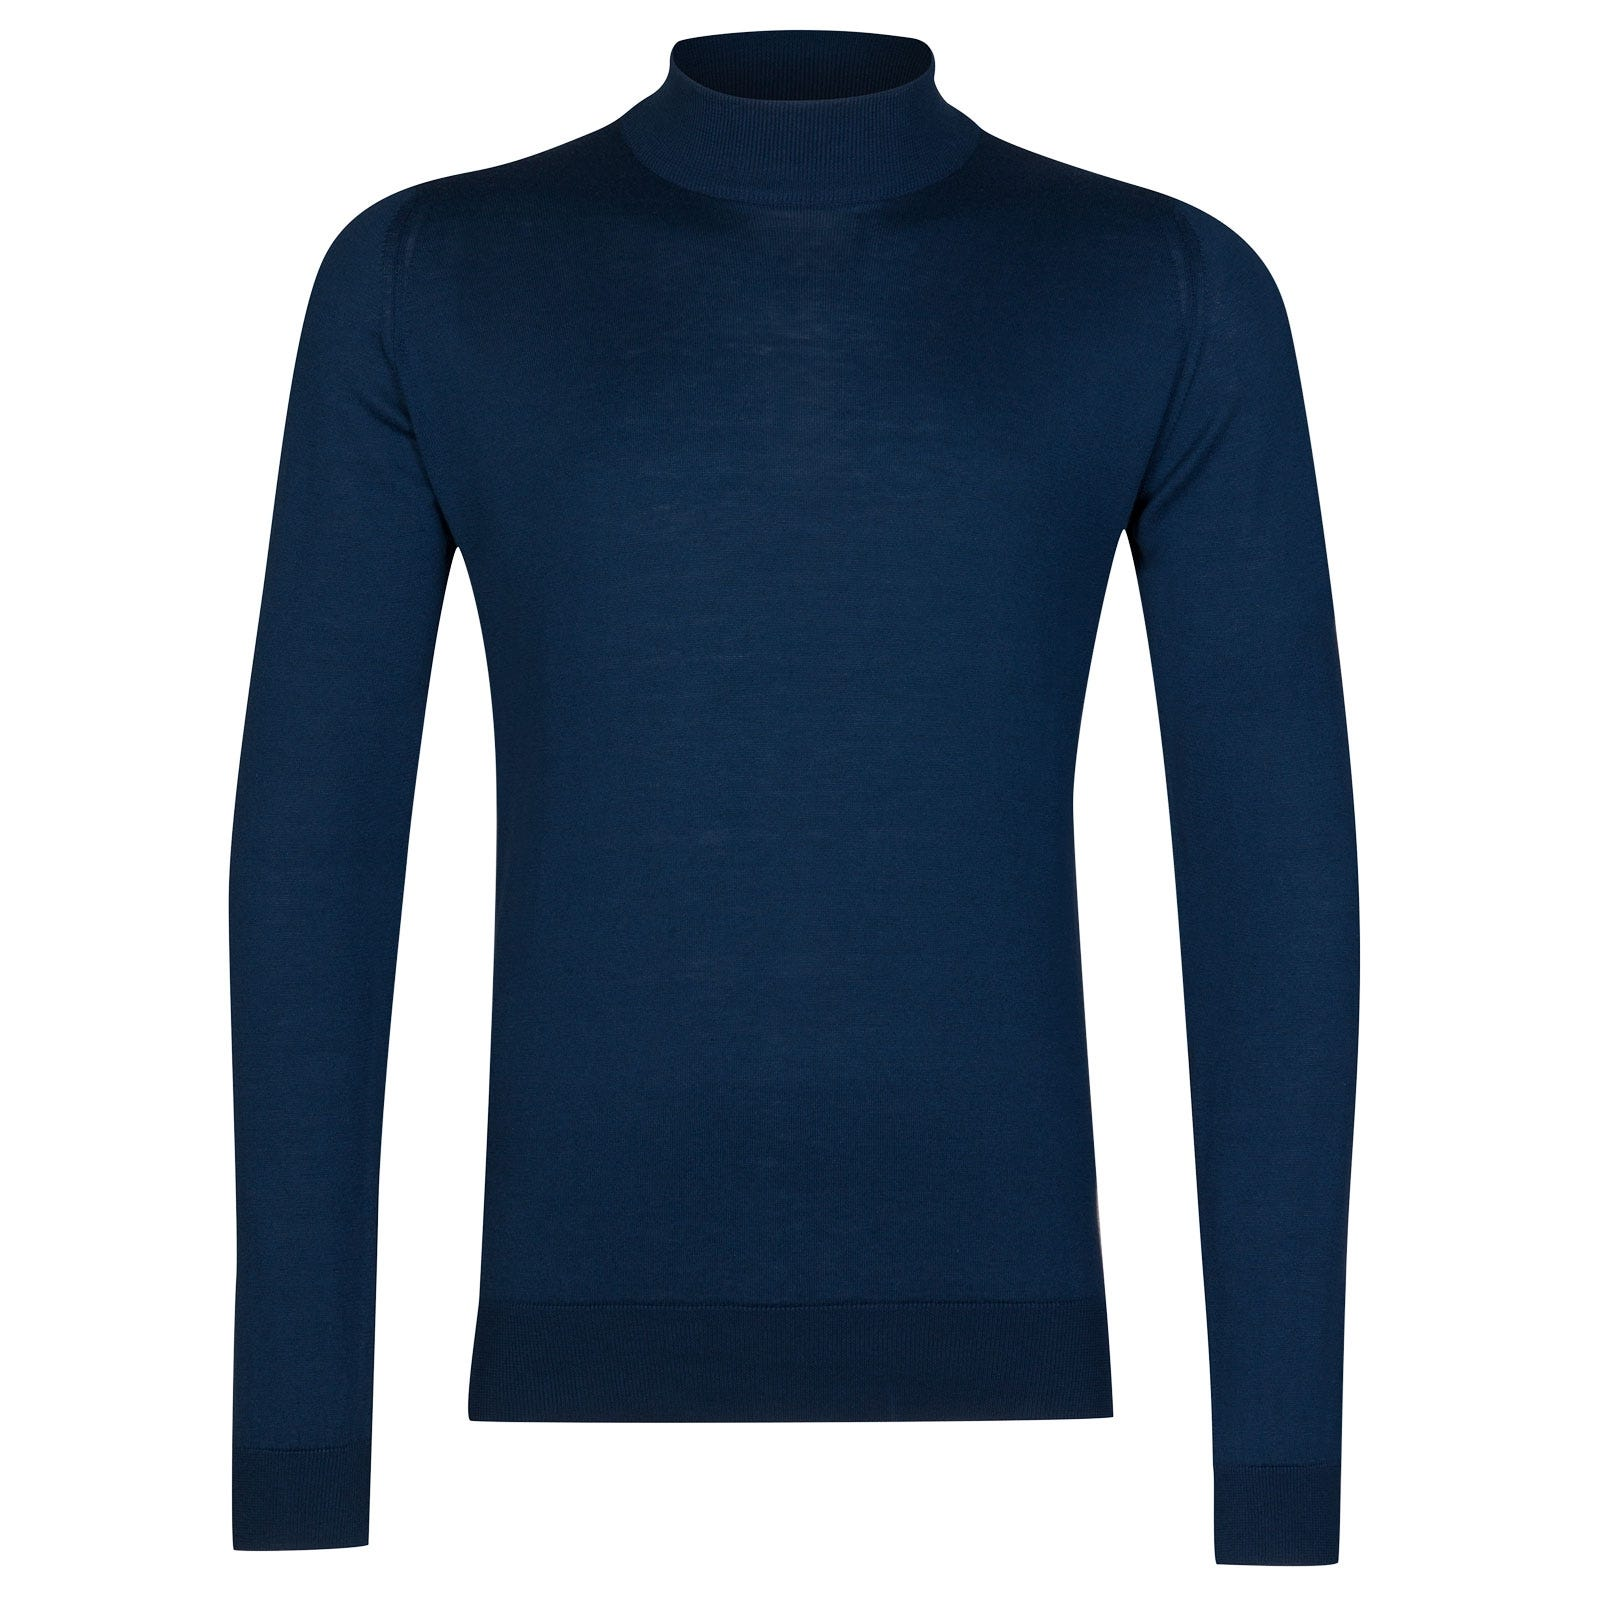 John Smedley Bradgate Sea Island Cotton Pullover in Indigo-XL